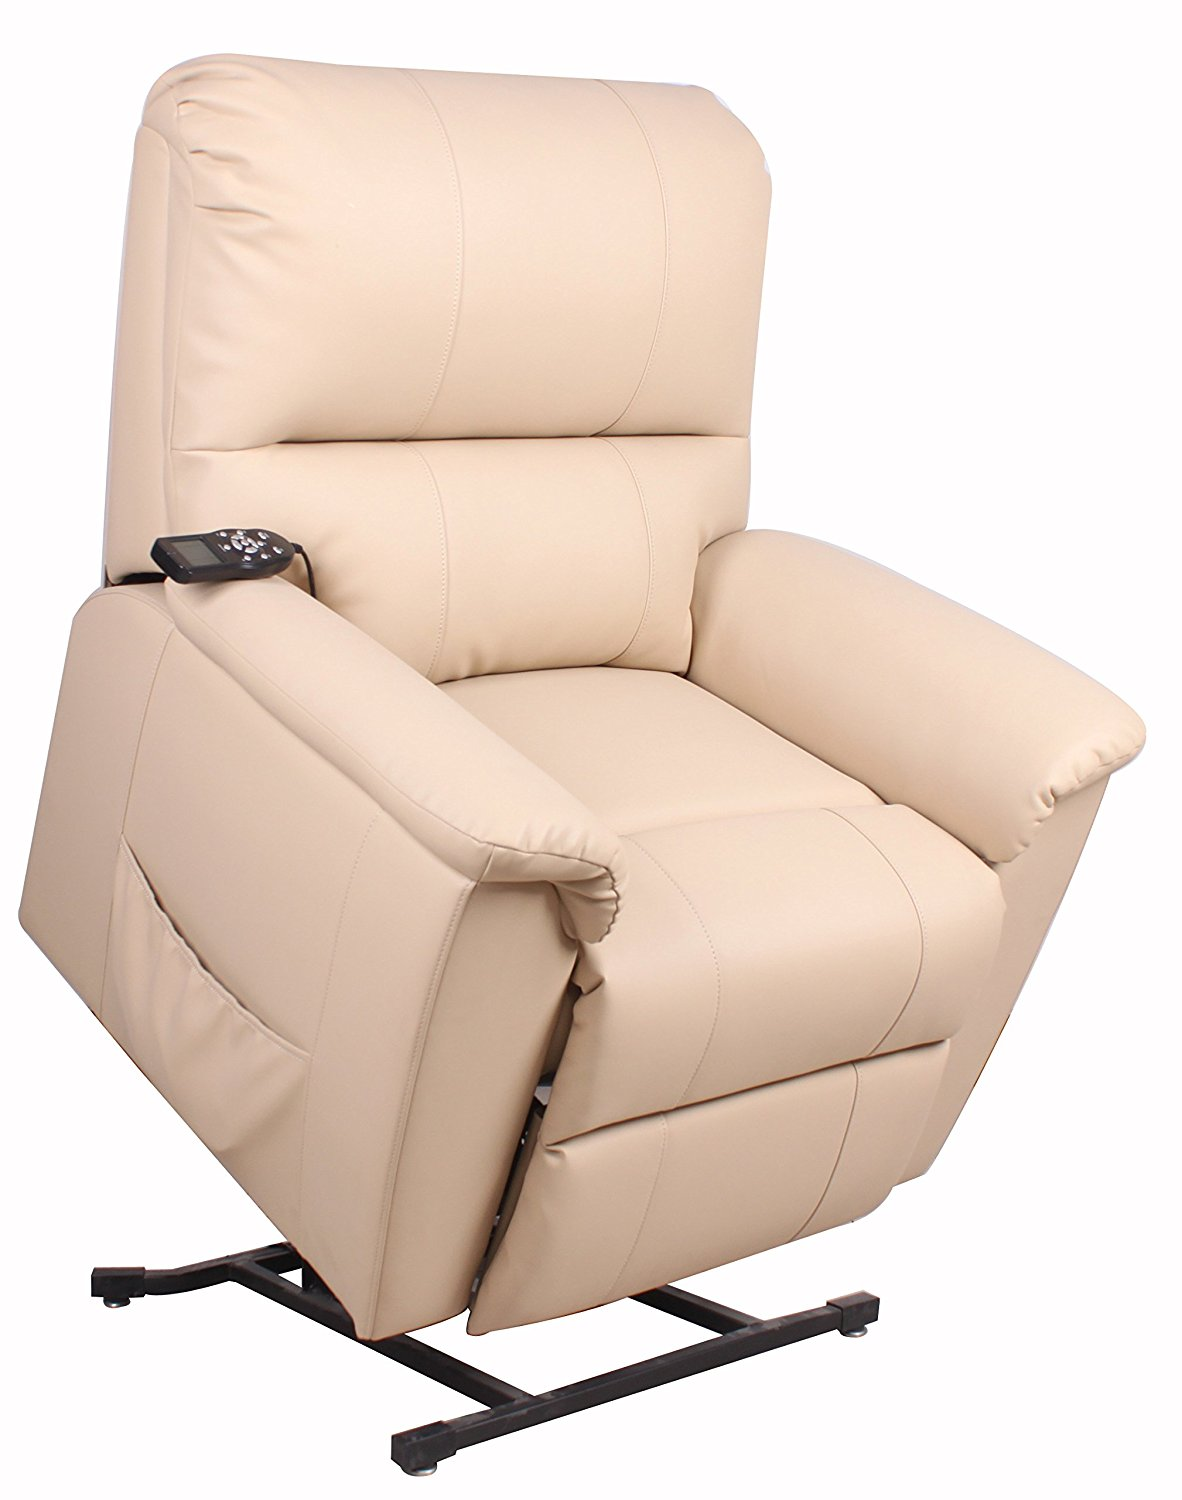 Bariatric Lift Chair Oakland 3 Position Power Adjustable Lift Chair With Heat And Massage